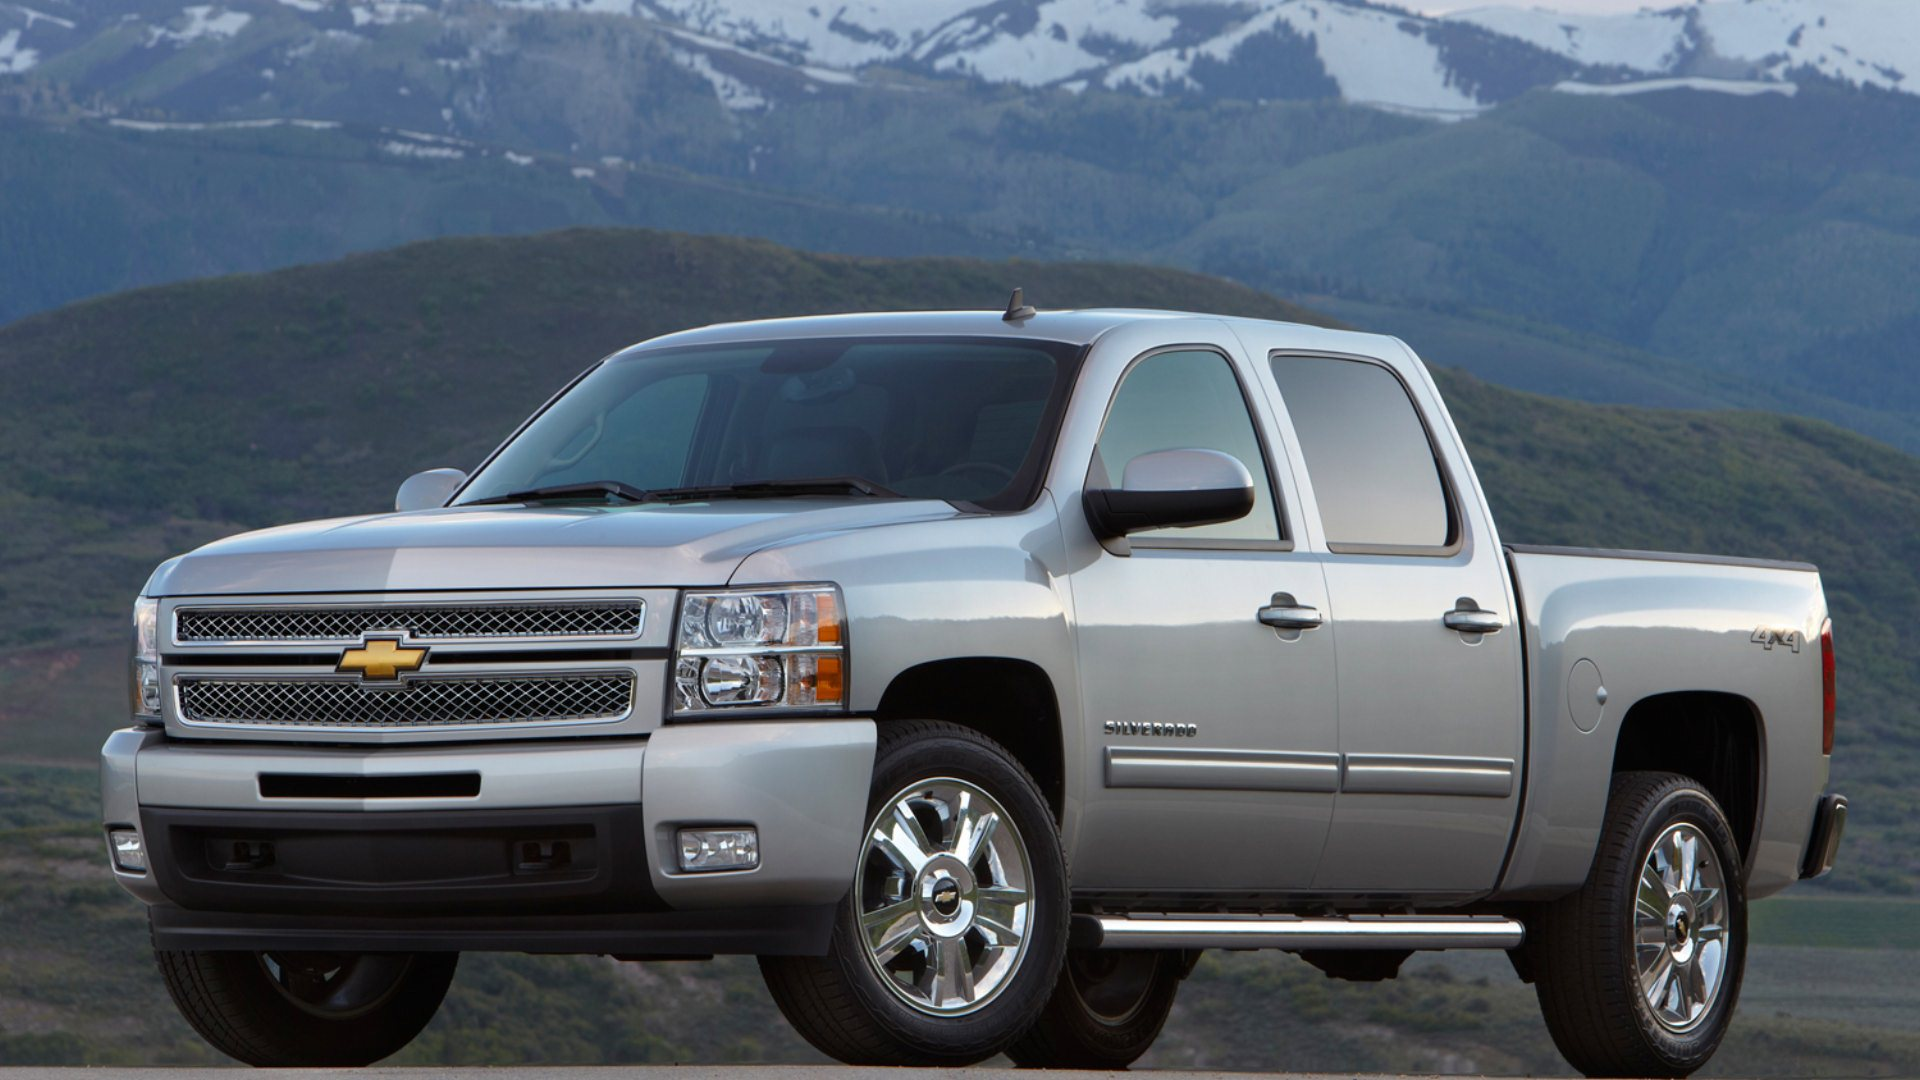 Chevy Trucks Wallpaper Affordable Squarebody Chevy Truck Wallpaper